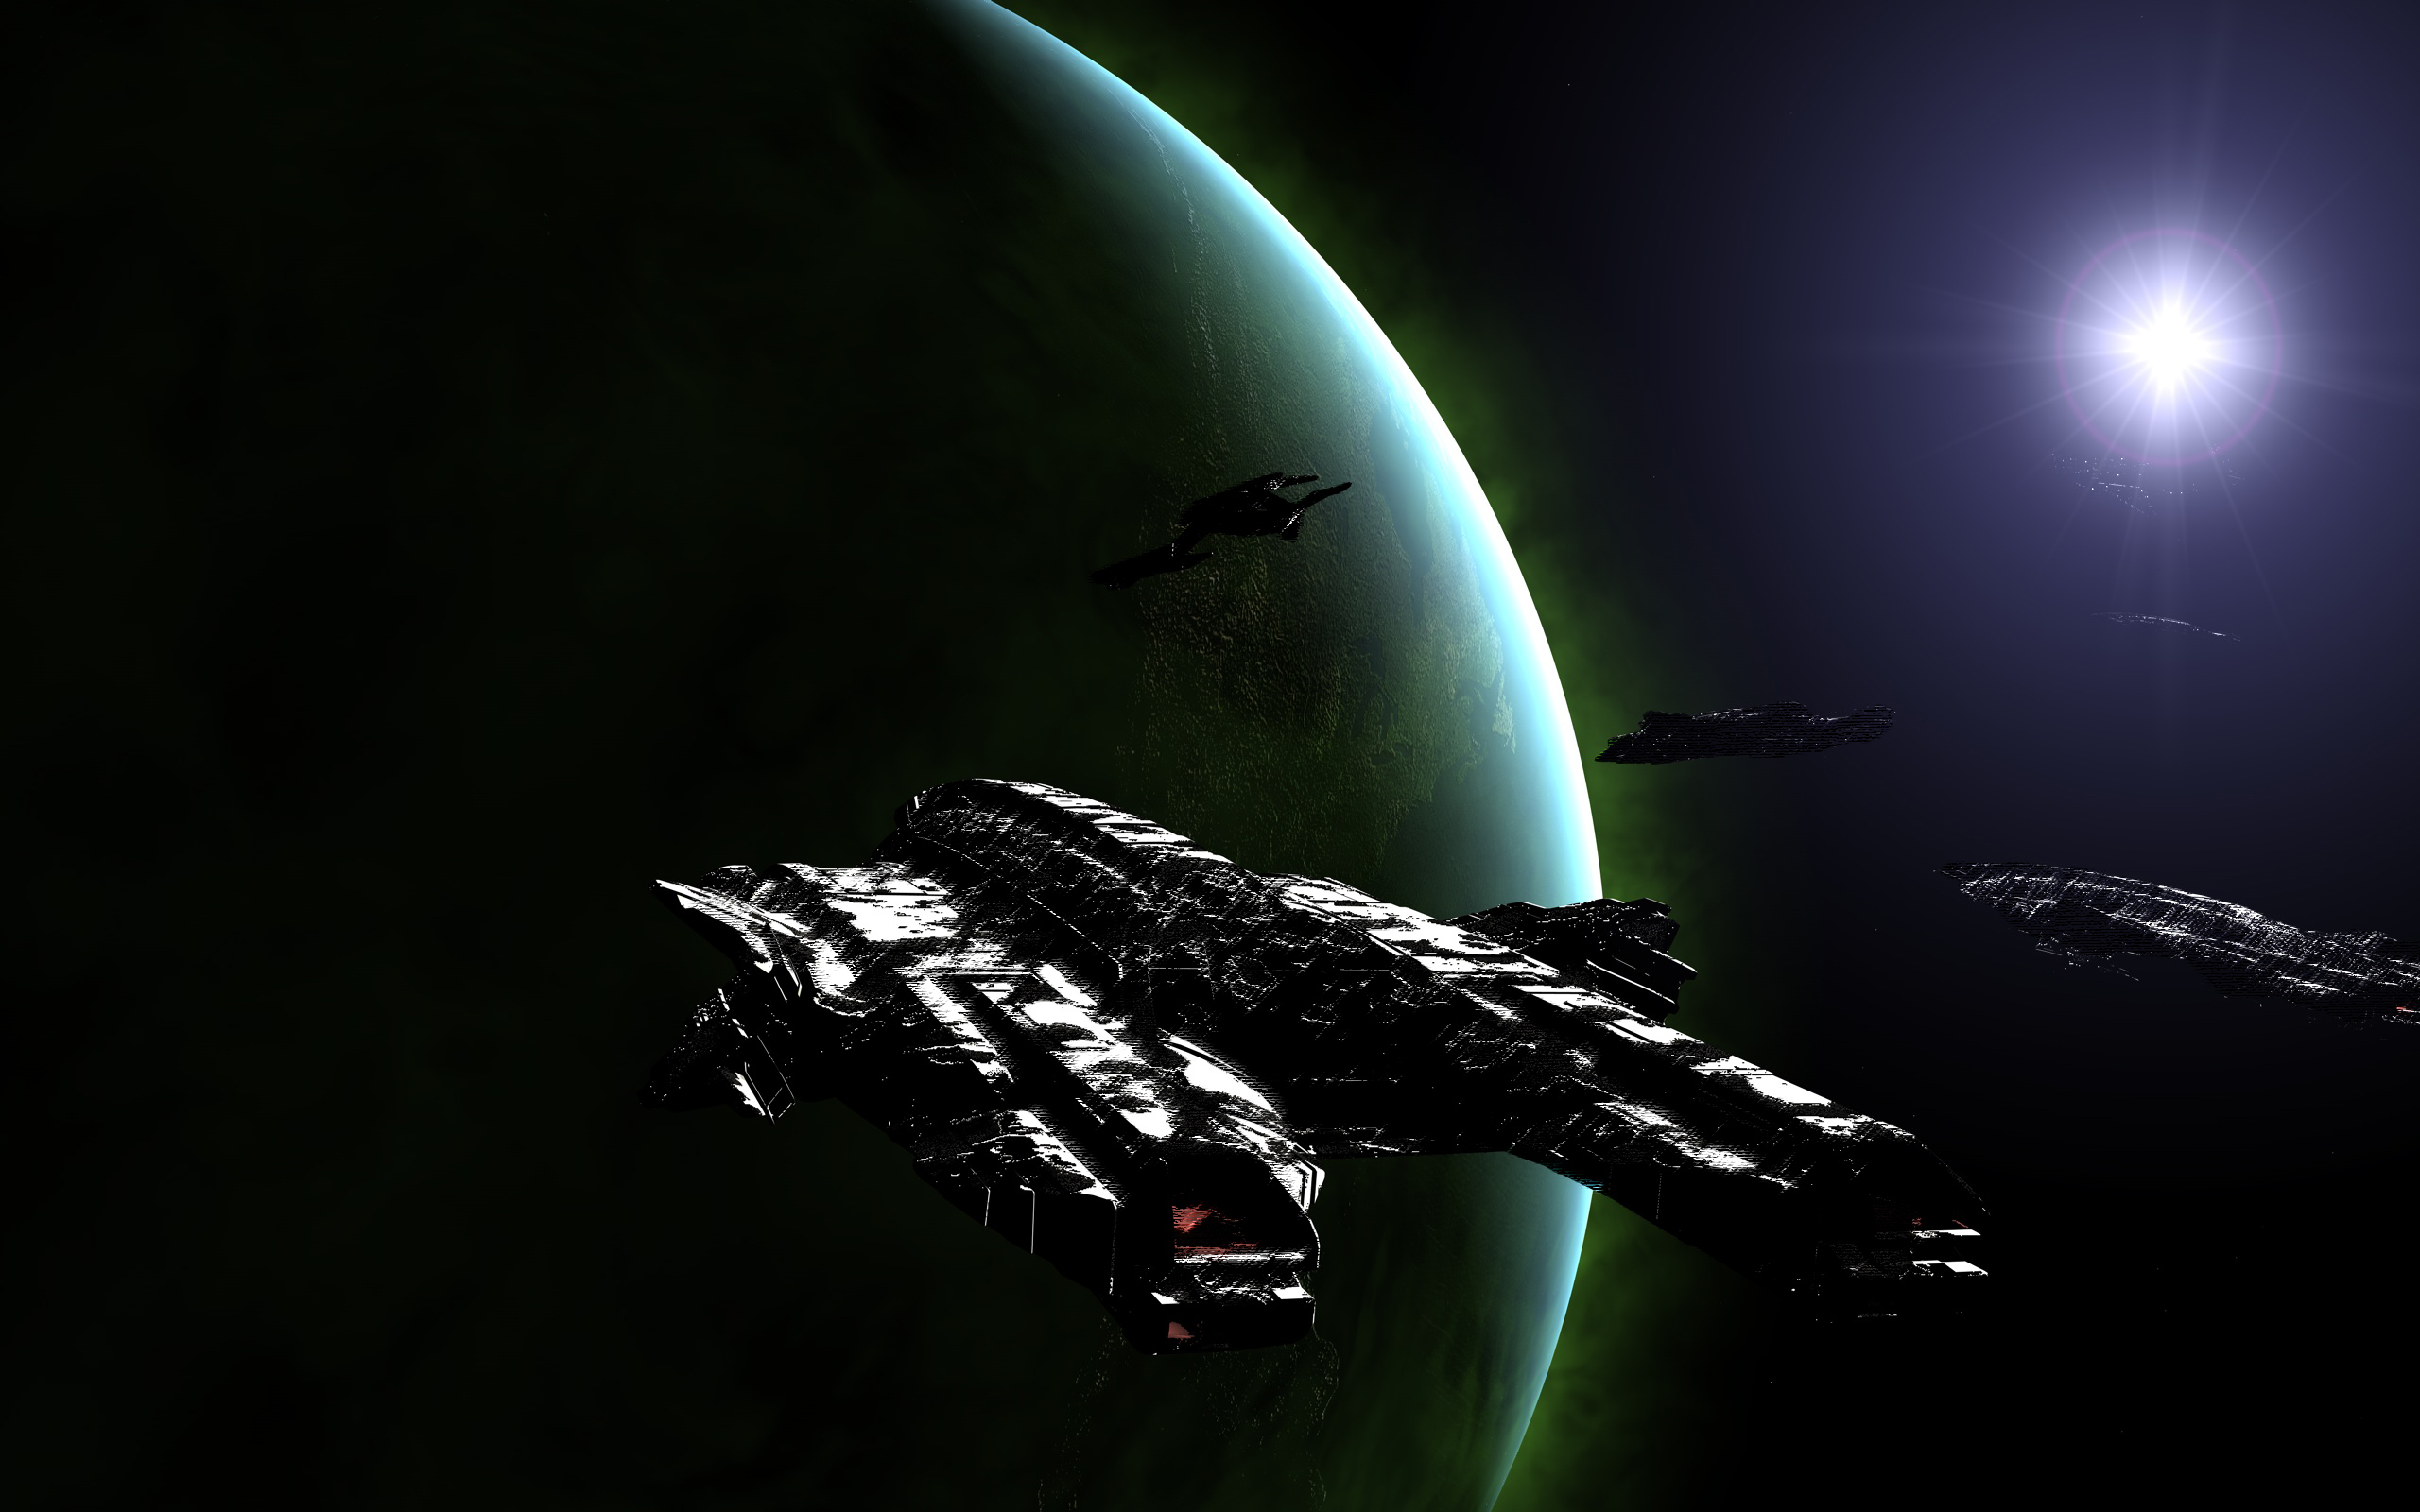 Fantascienza - Pianeti  - Planet - Invaders - Ship - Space Sfondi